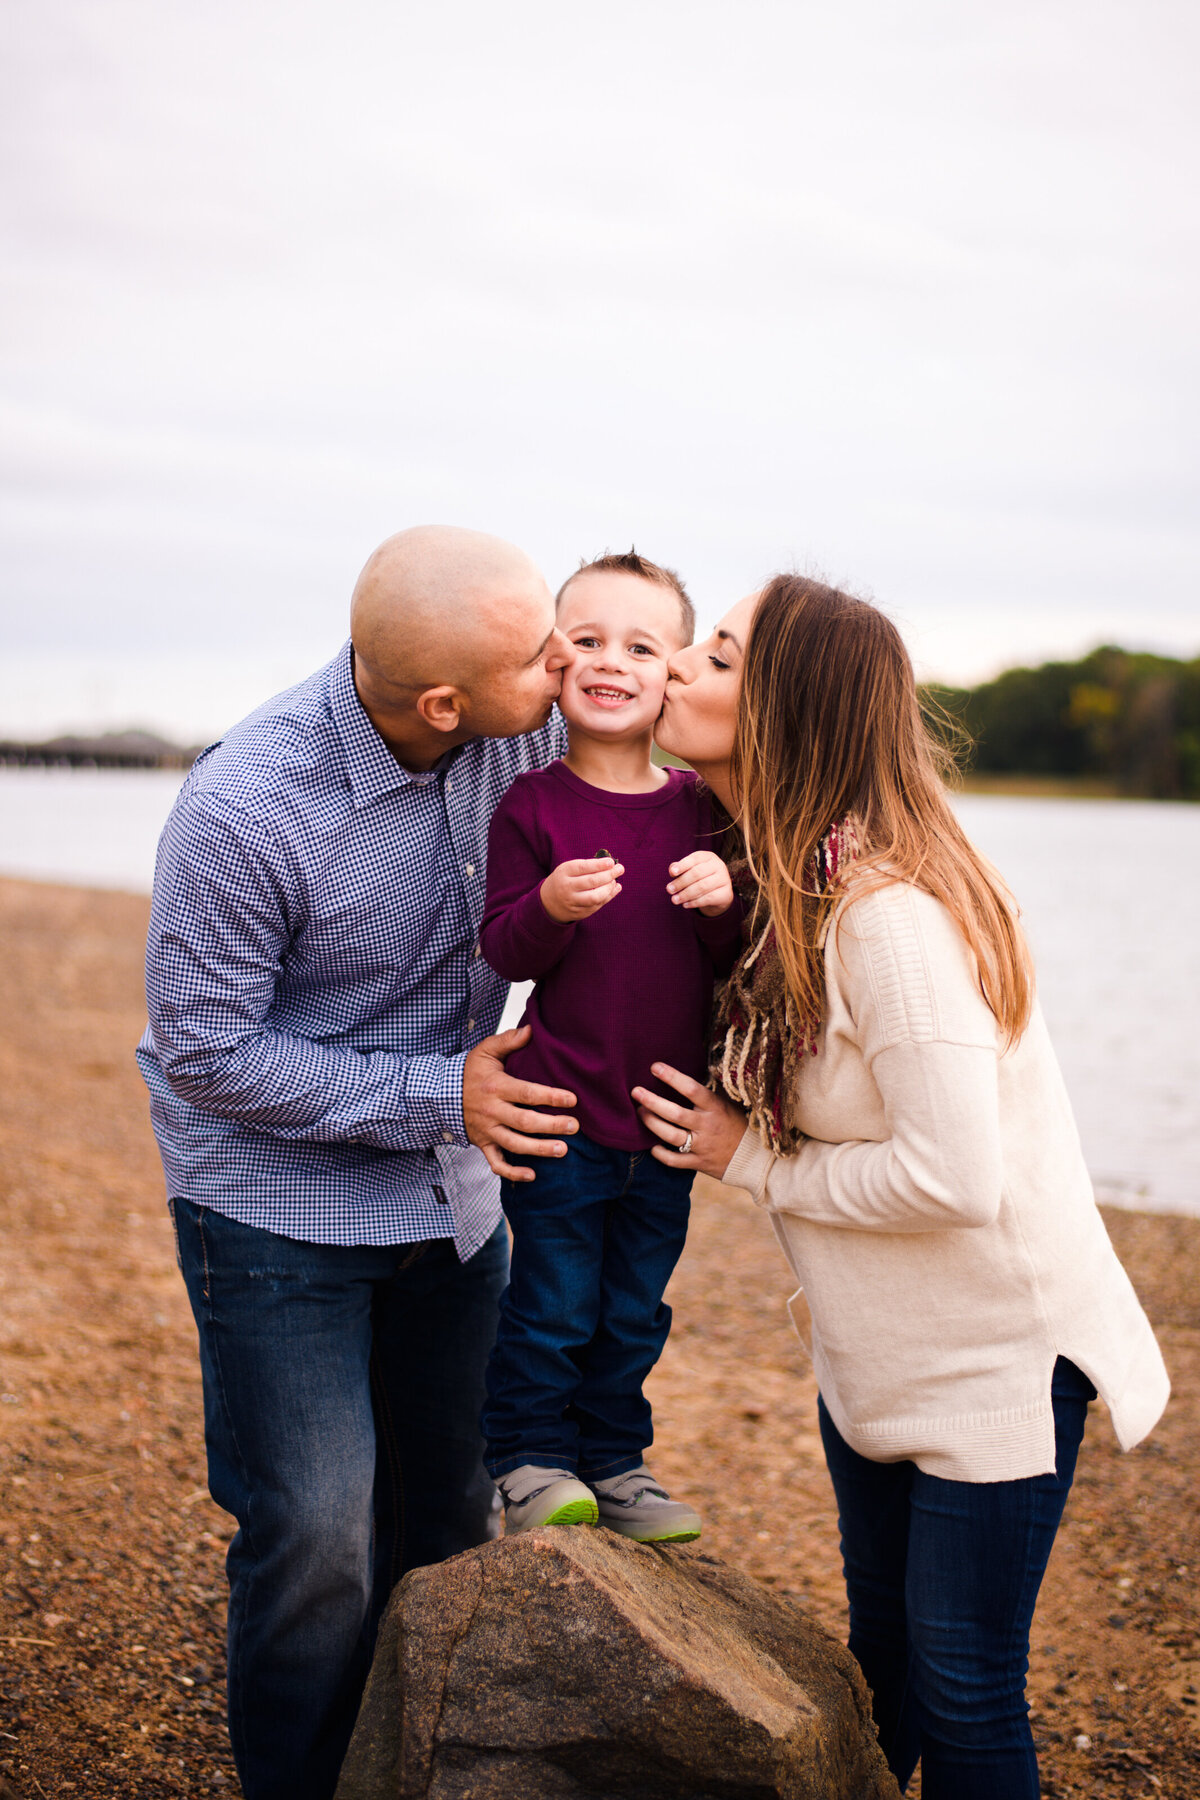 Obear Park family session with mom and dad kissing child